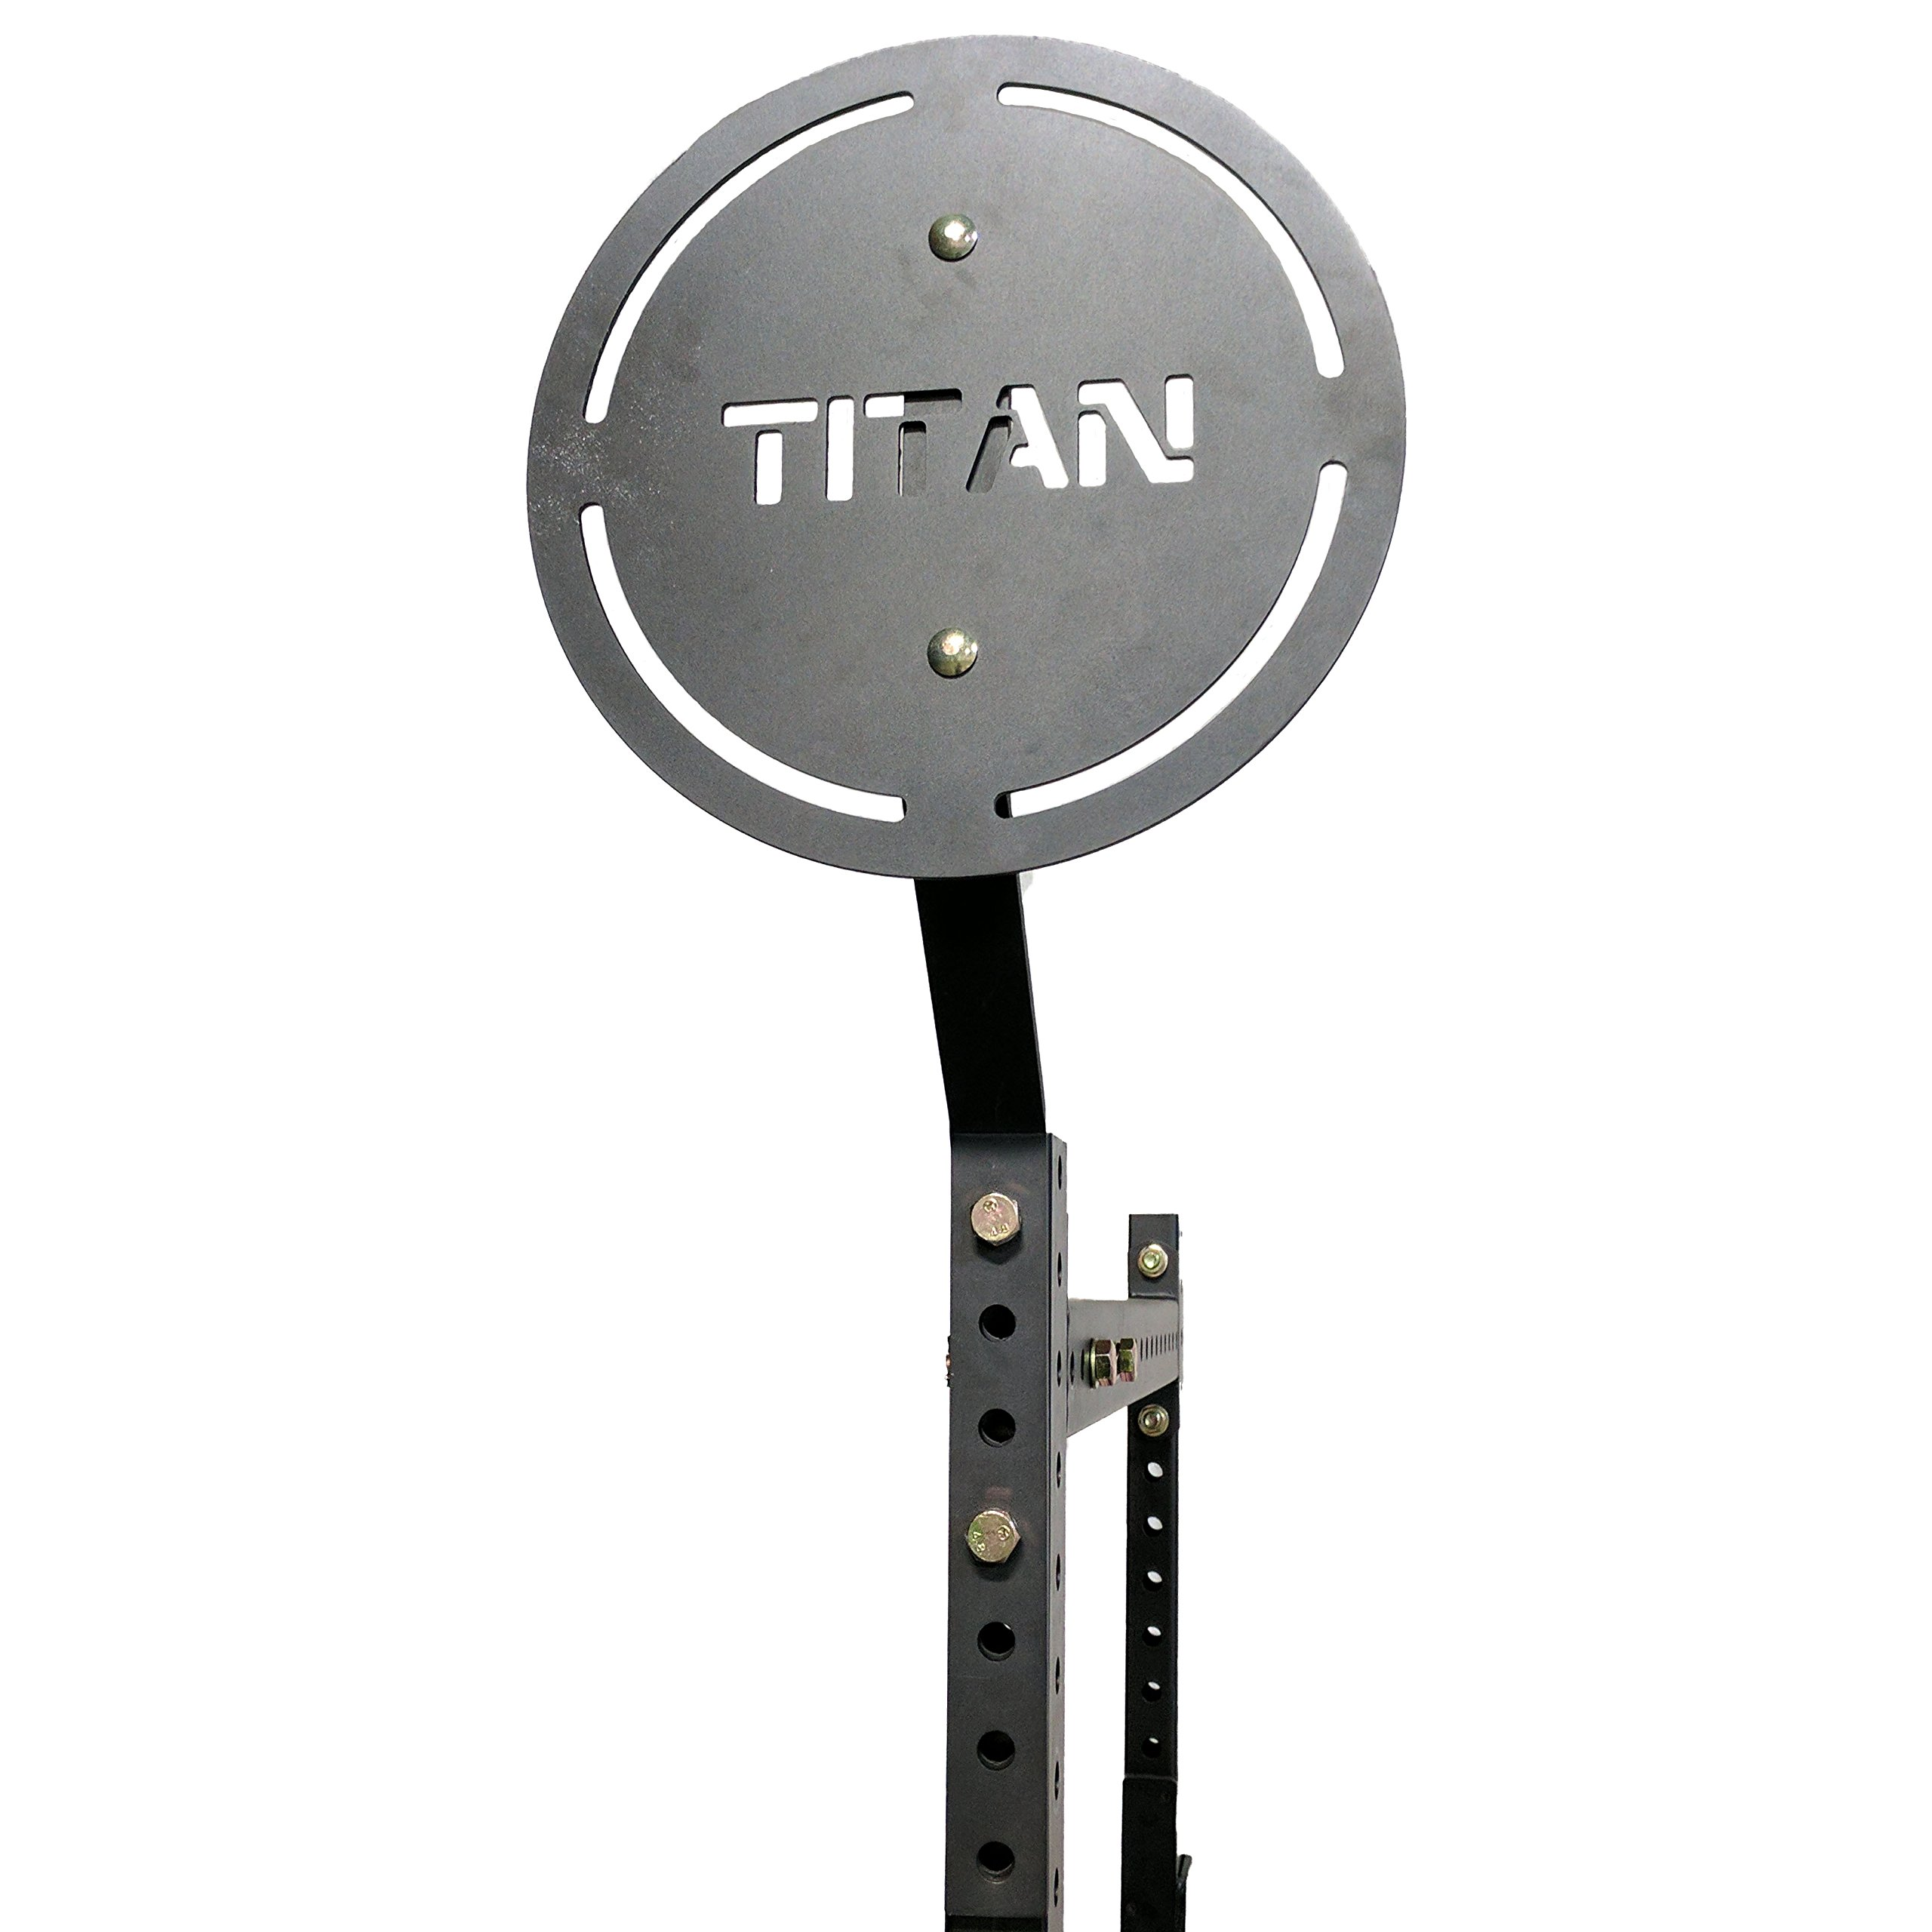 Titan Fitness Mounted Wall Ball Target for T-3 or X-3 Racks